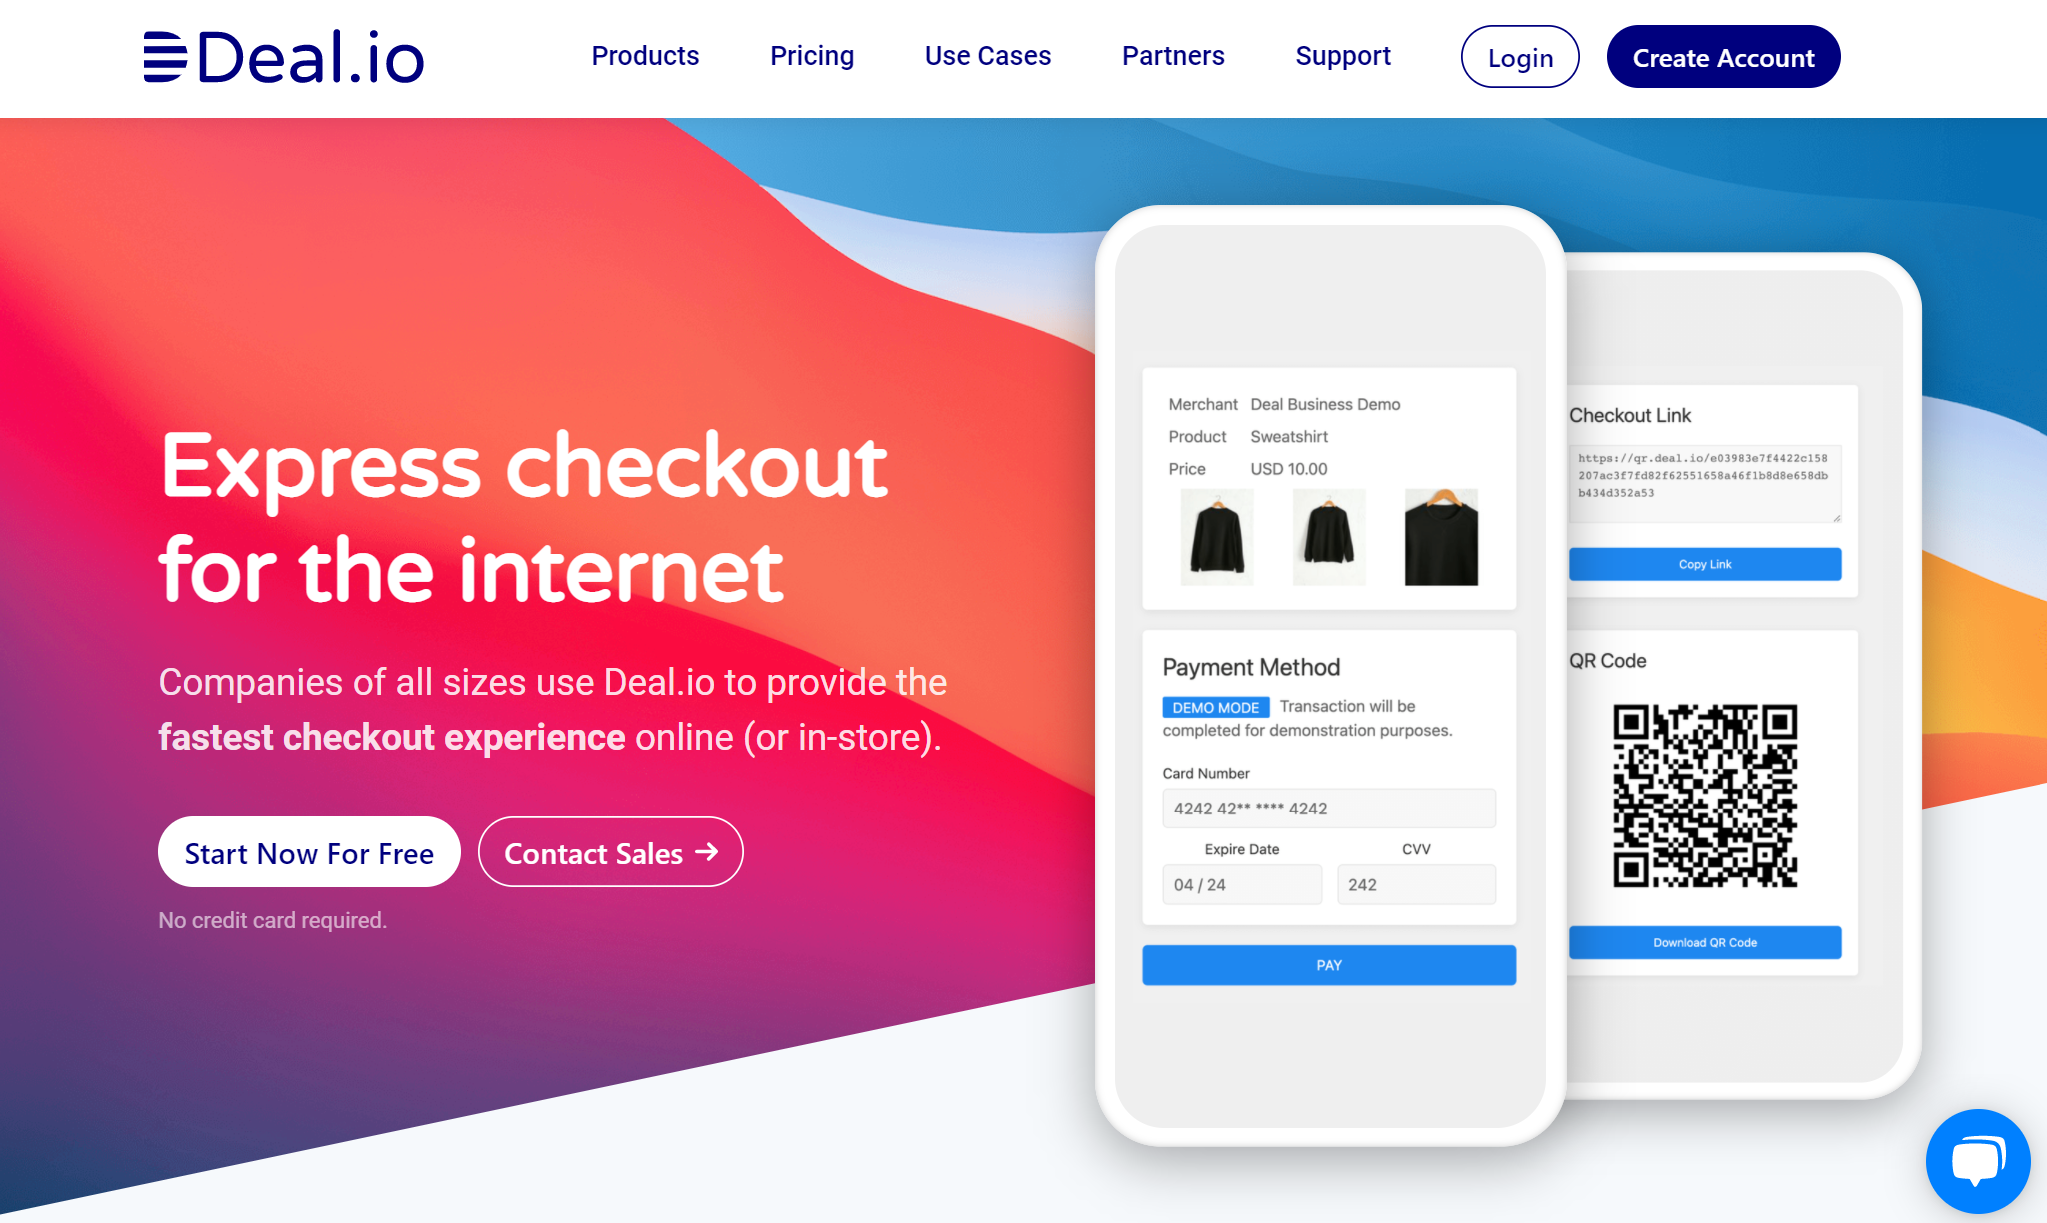 Best Checkout Tools - Deal.io